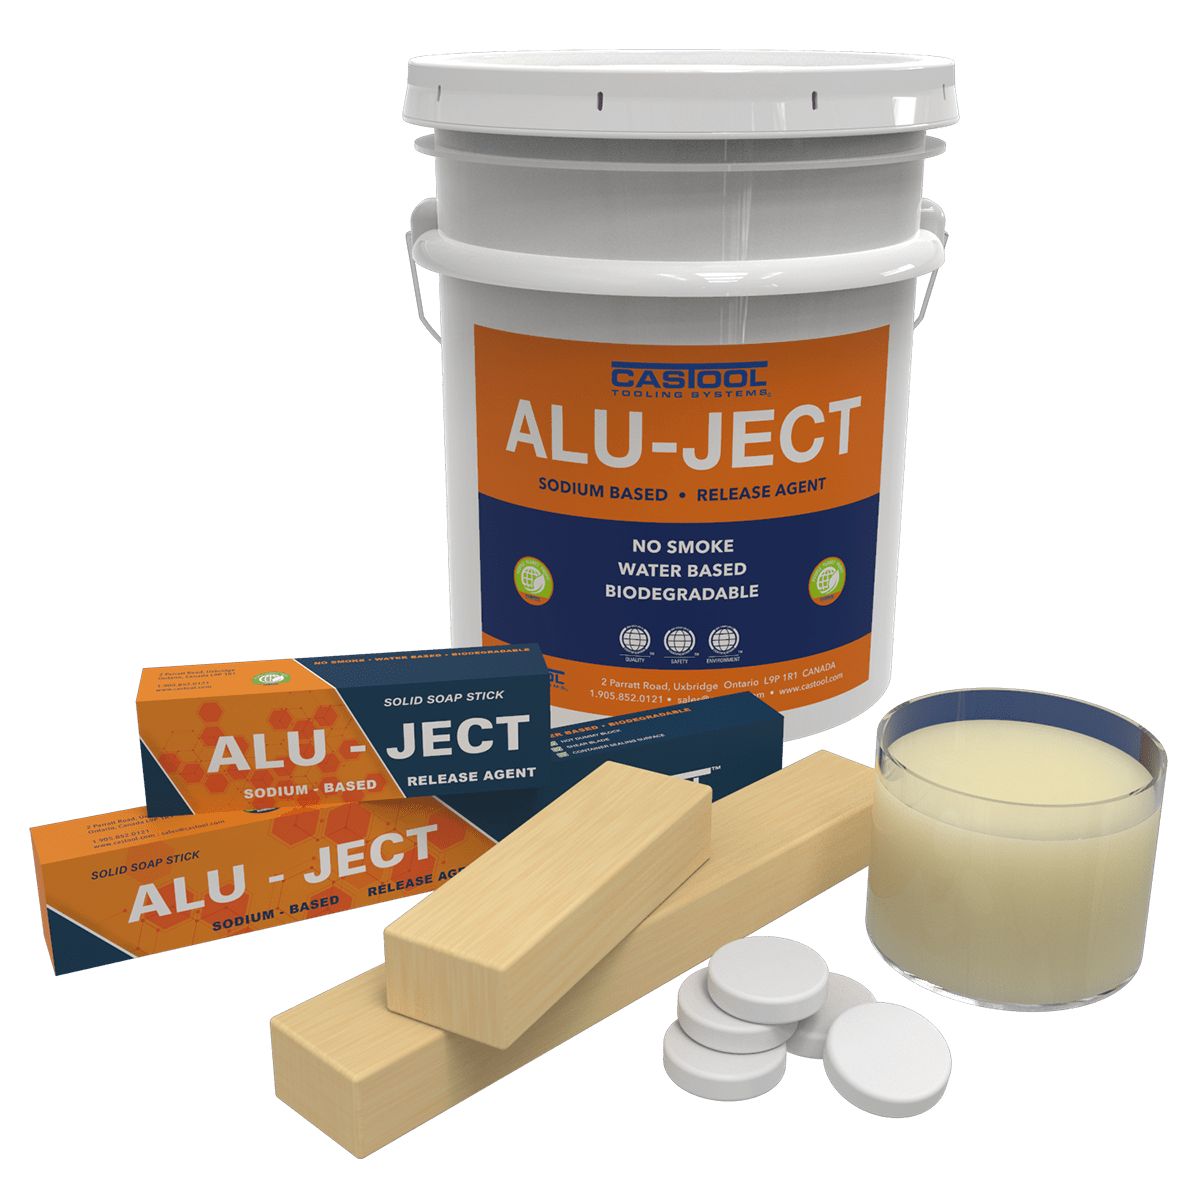 Alu-ject Products